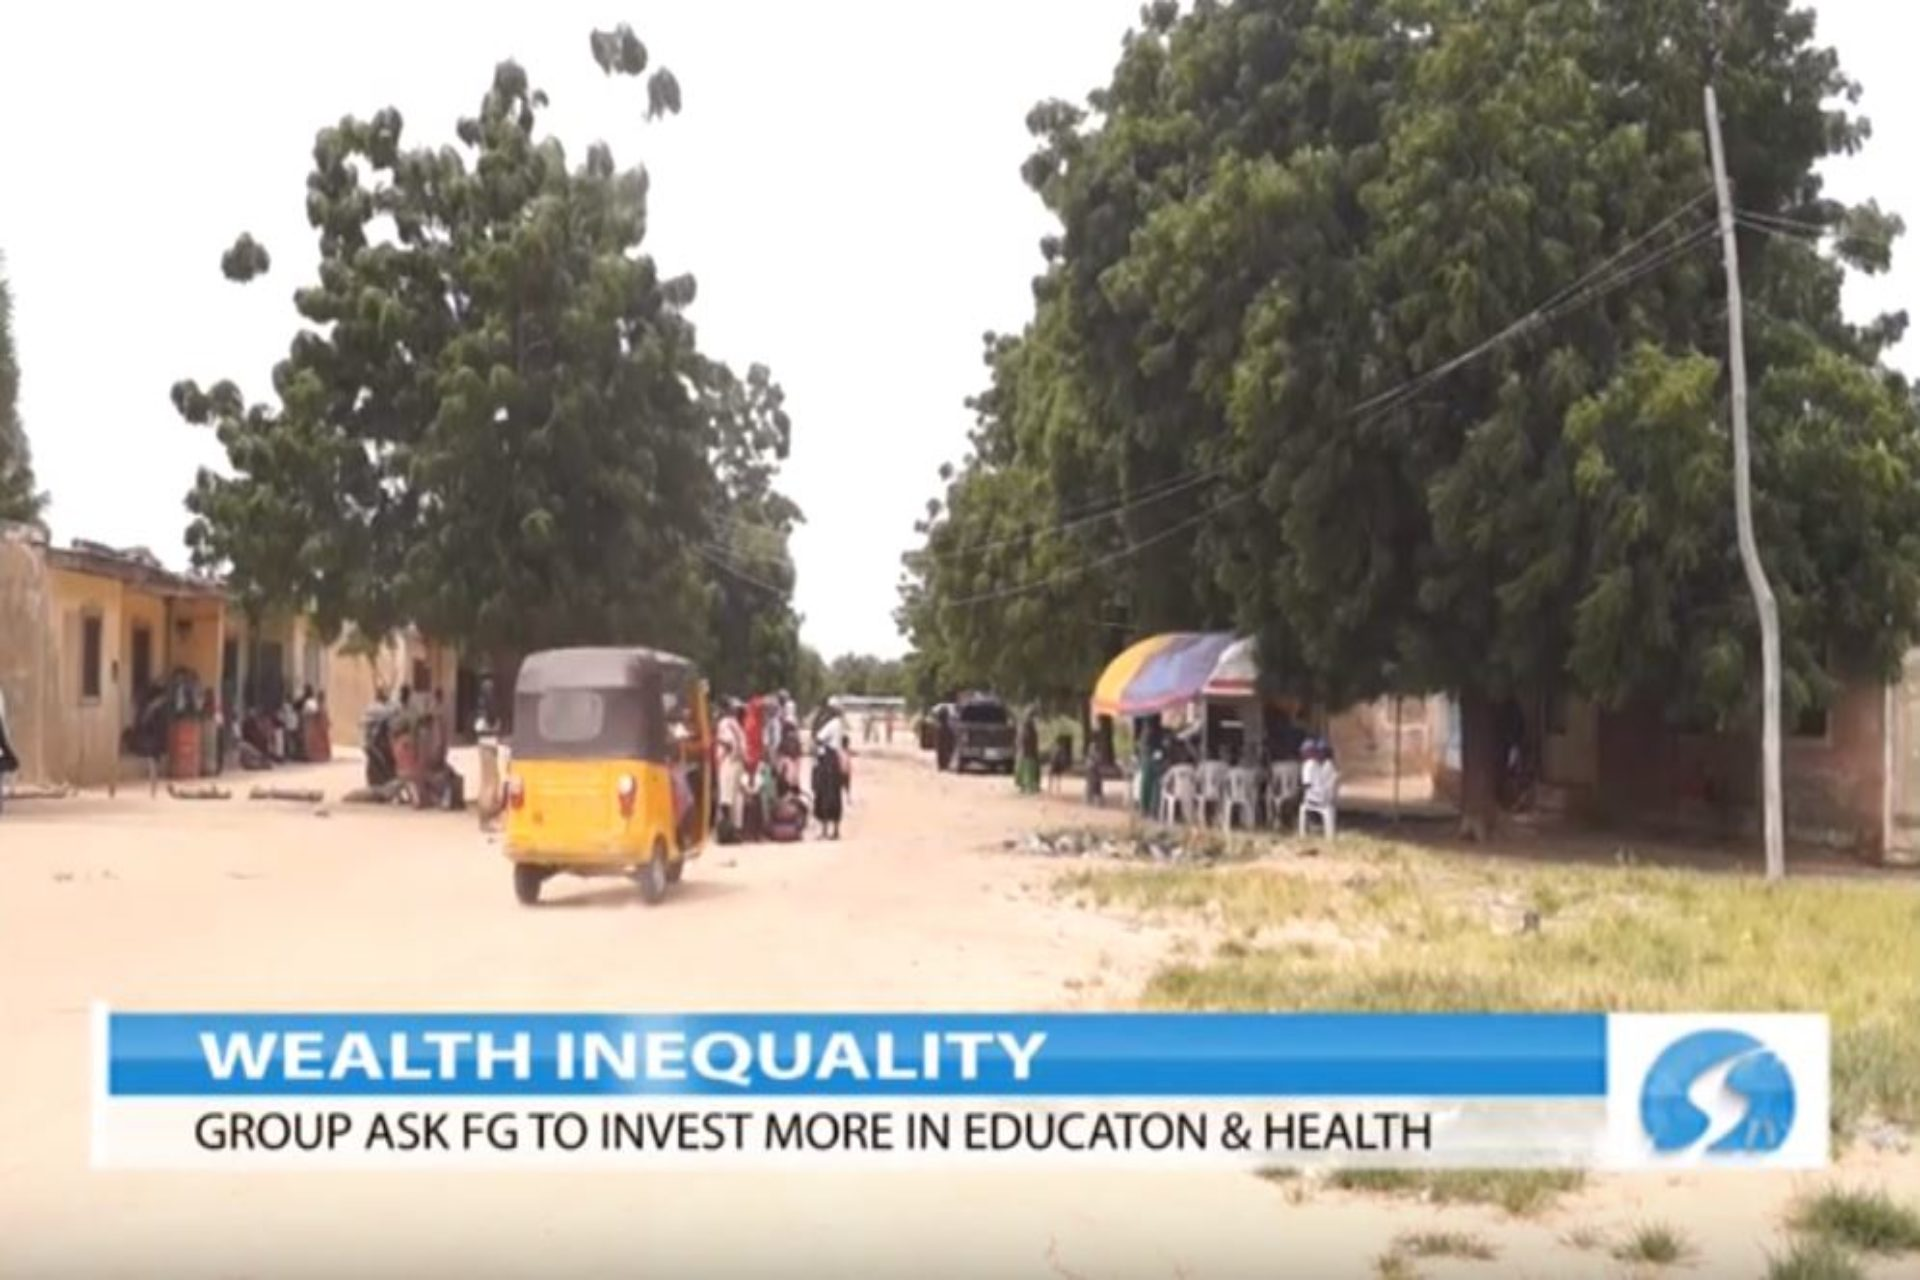 Wealth Inequality: Group Ask FG To Invest In Education & Health 301019 #CPPA